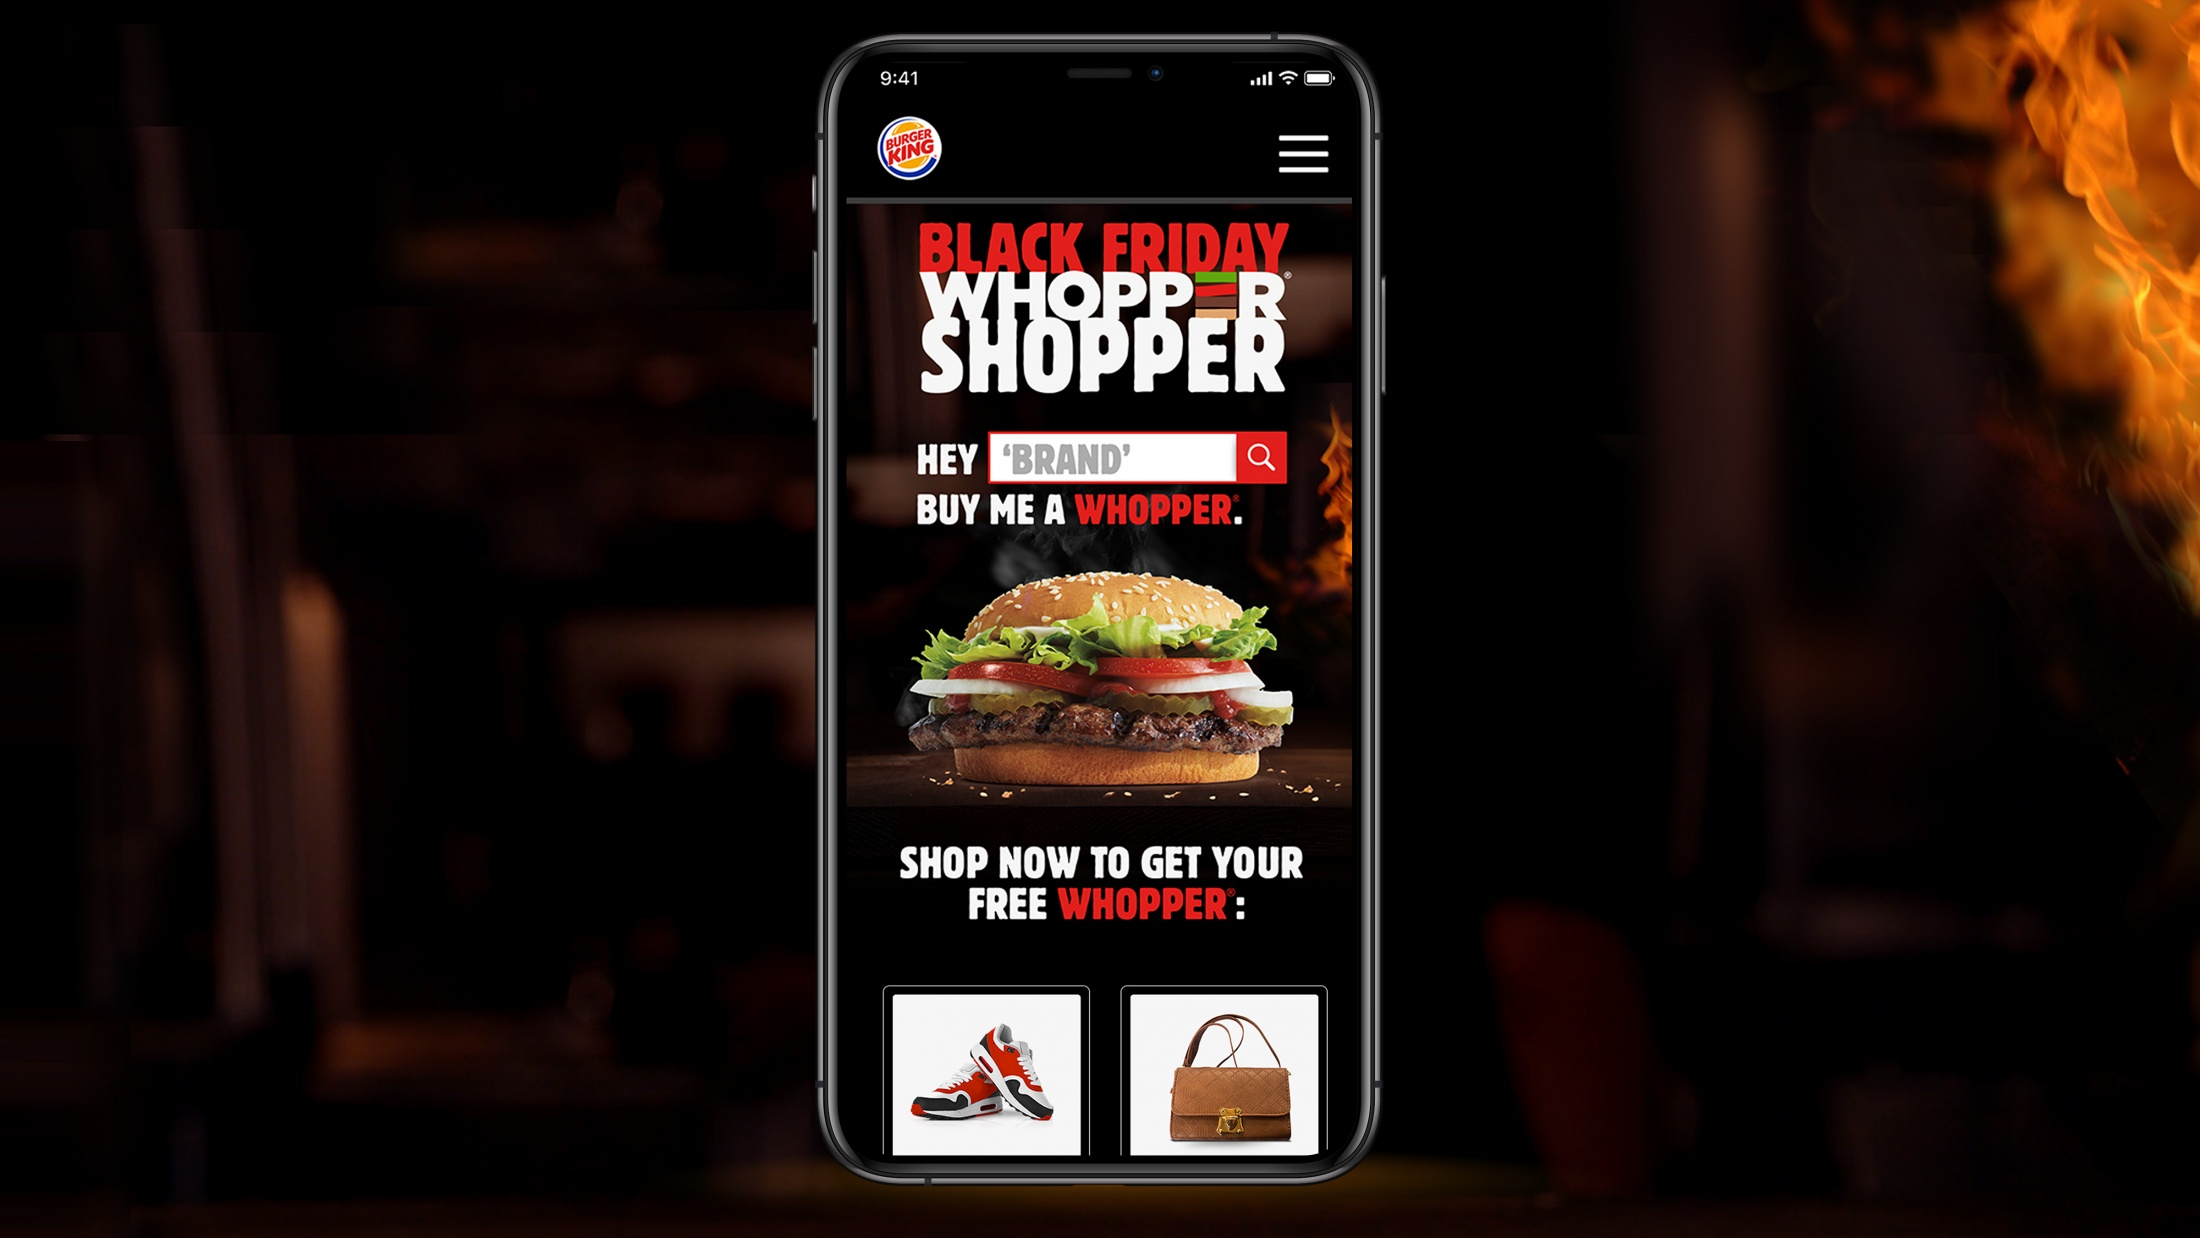 Image Media for Black Friday Whopper Shopper